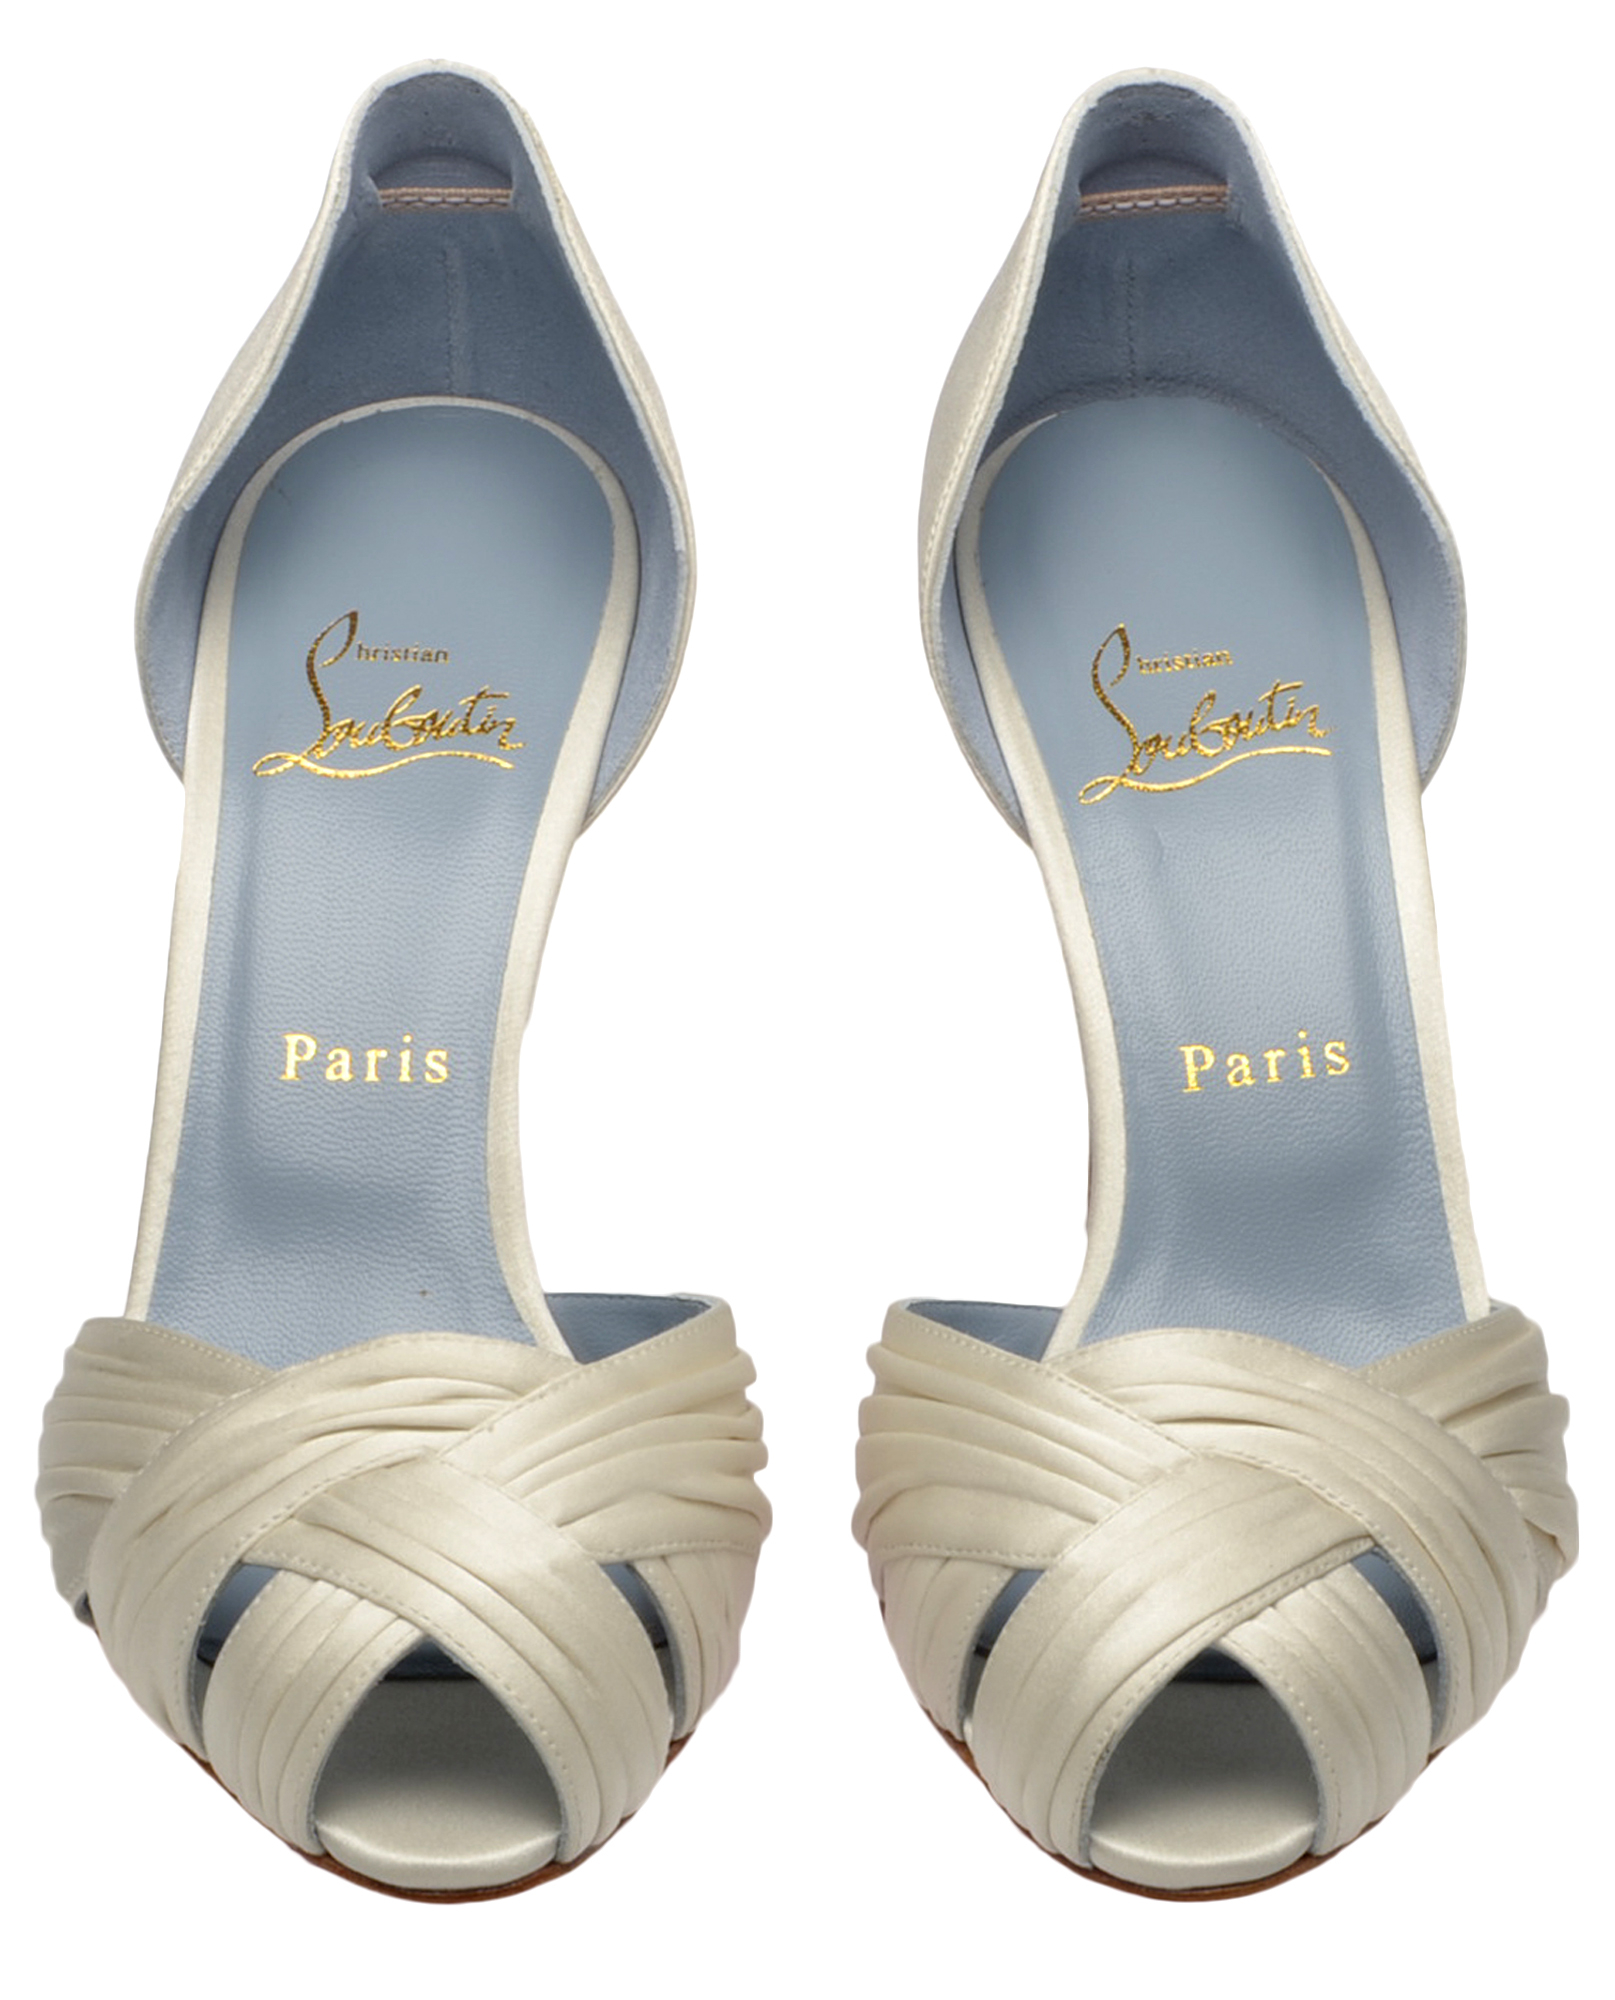 ... gallery. previously sold at: browns fashion � women\u0027s wedding shoes